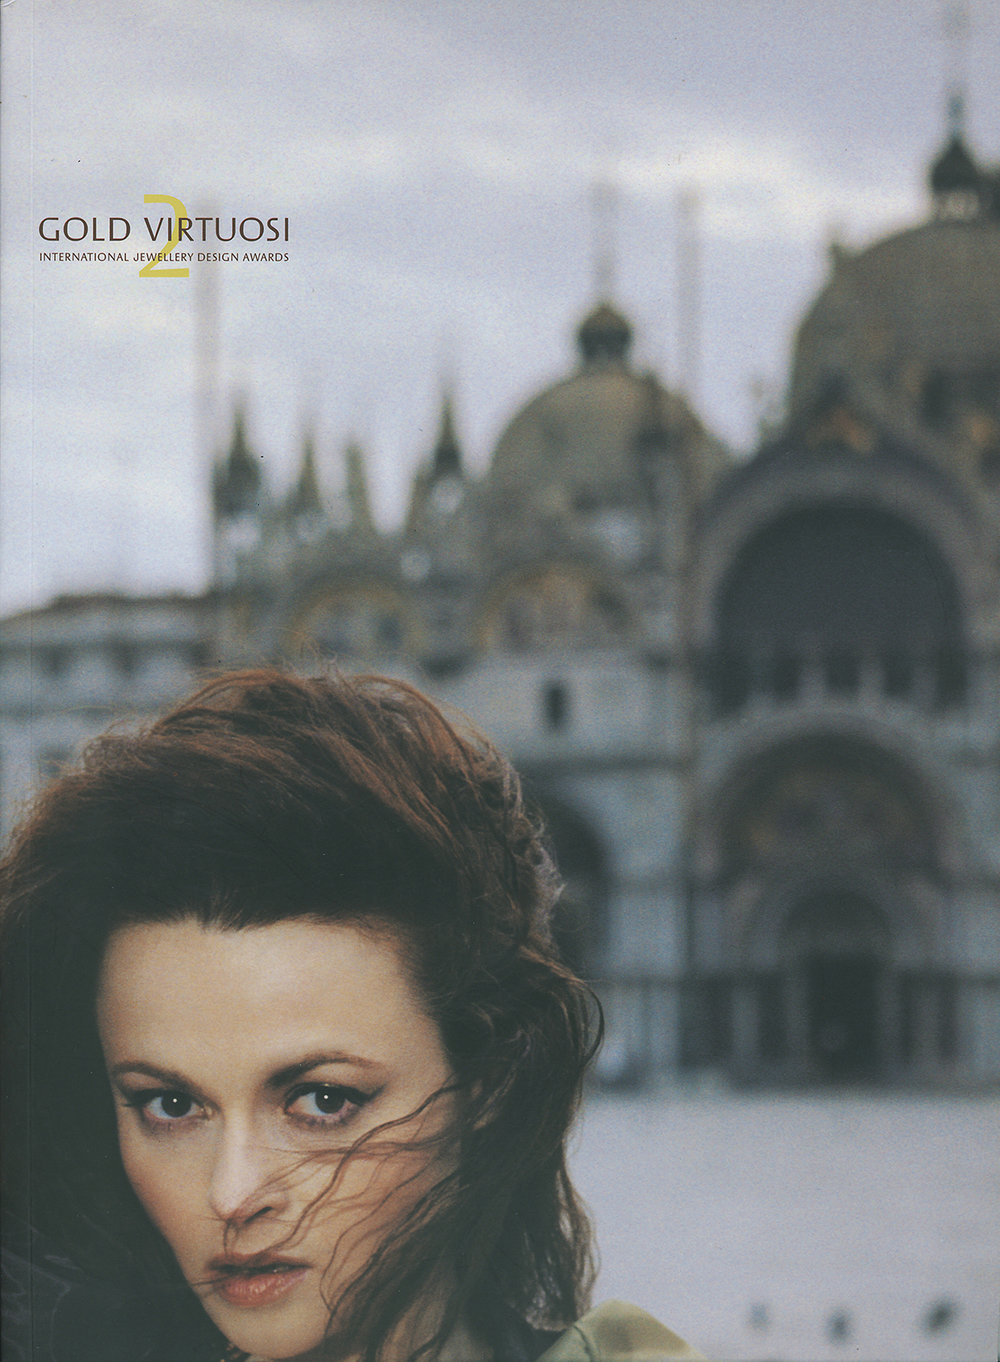 GOLD VIRTUOSI MAGAZINE 2002